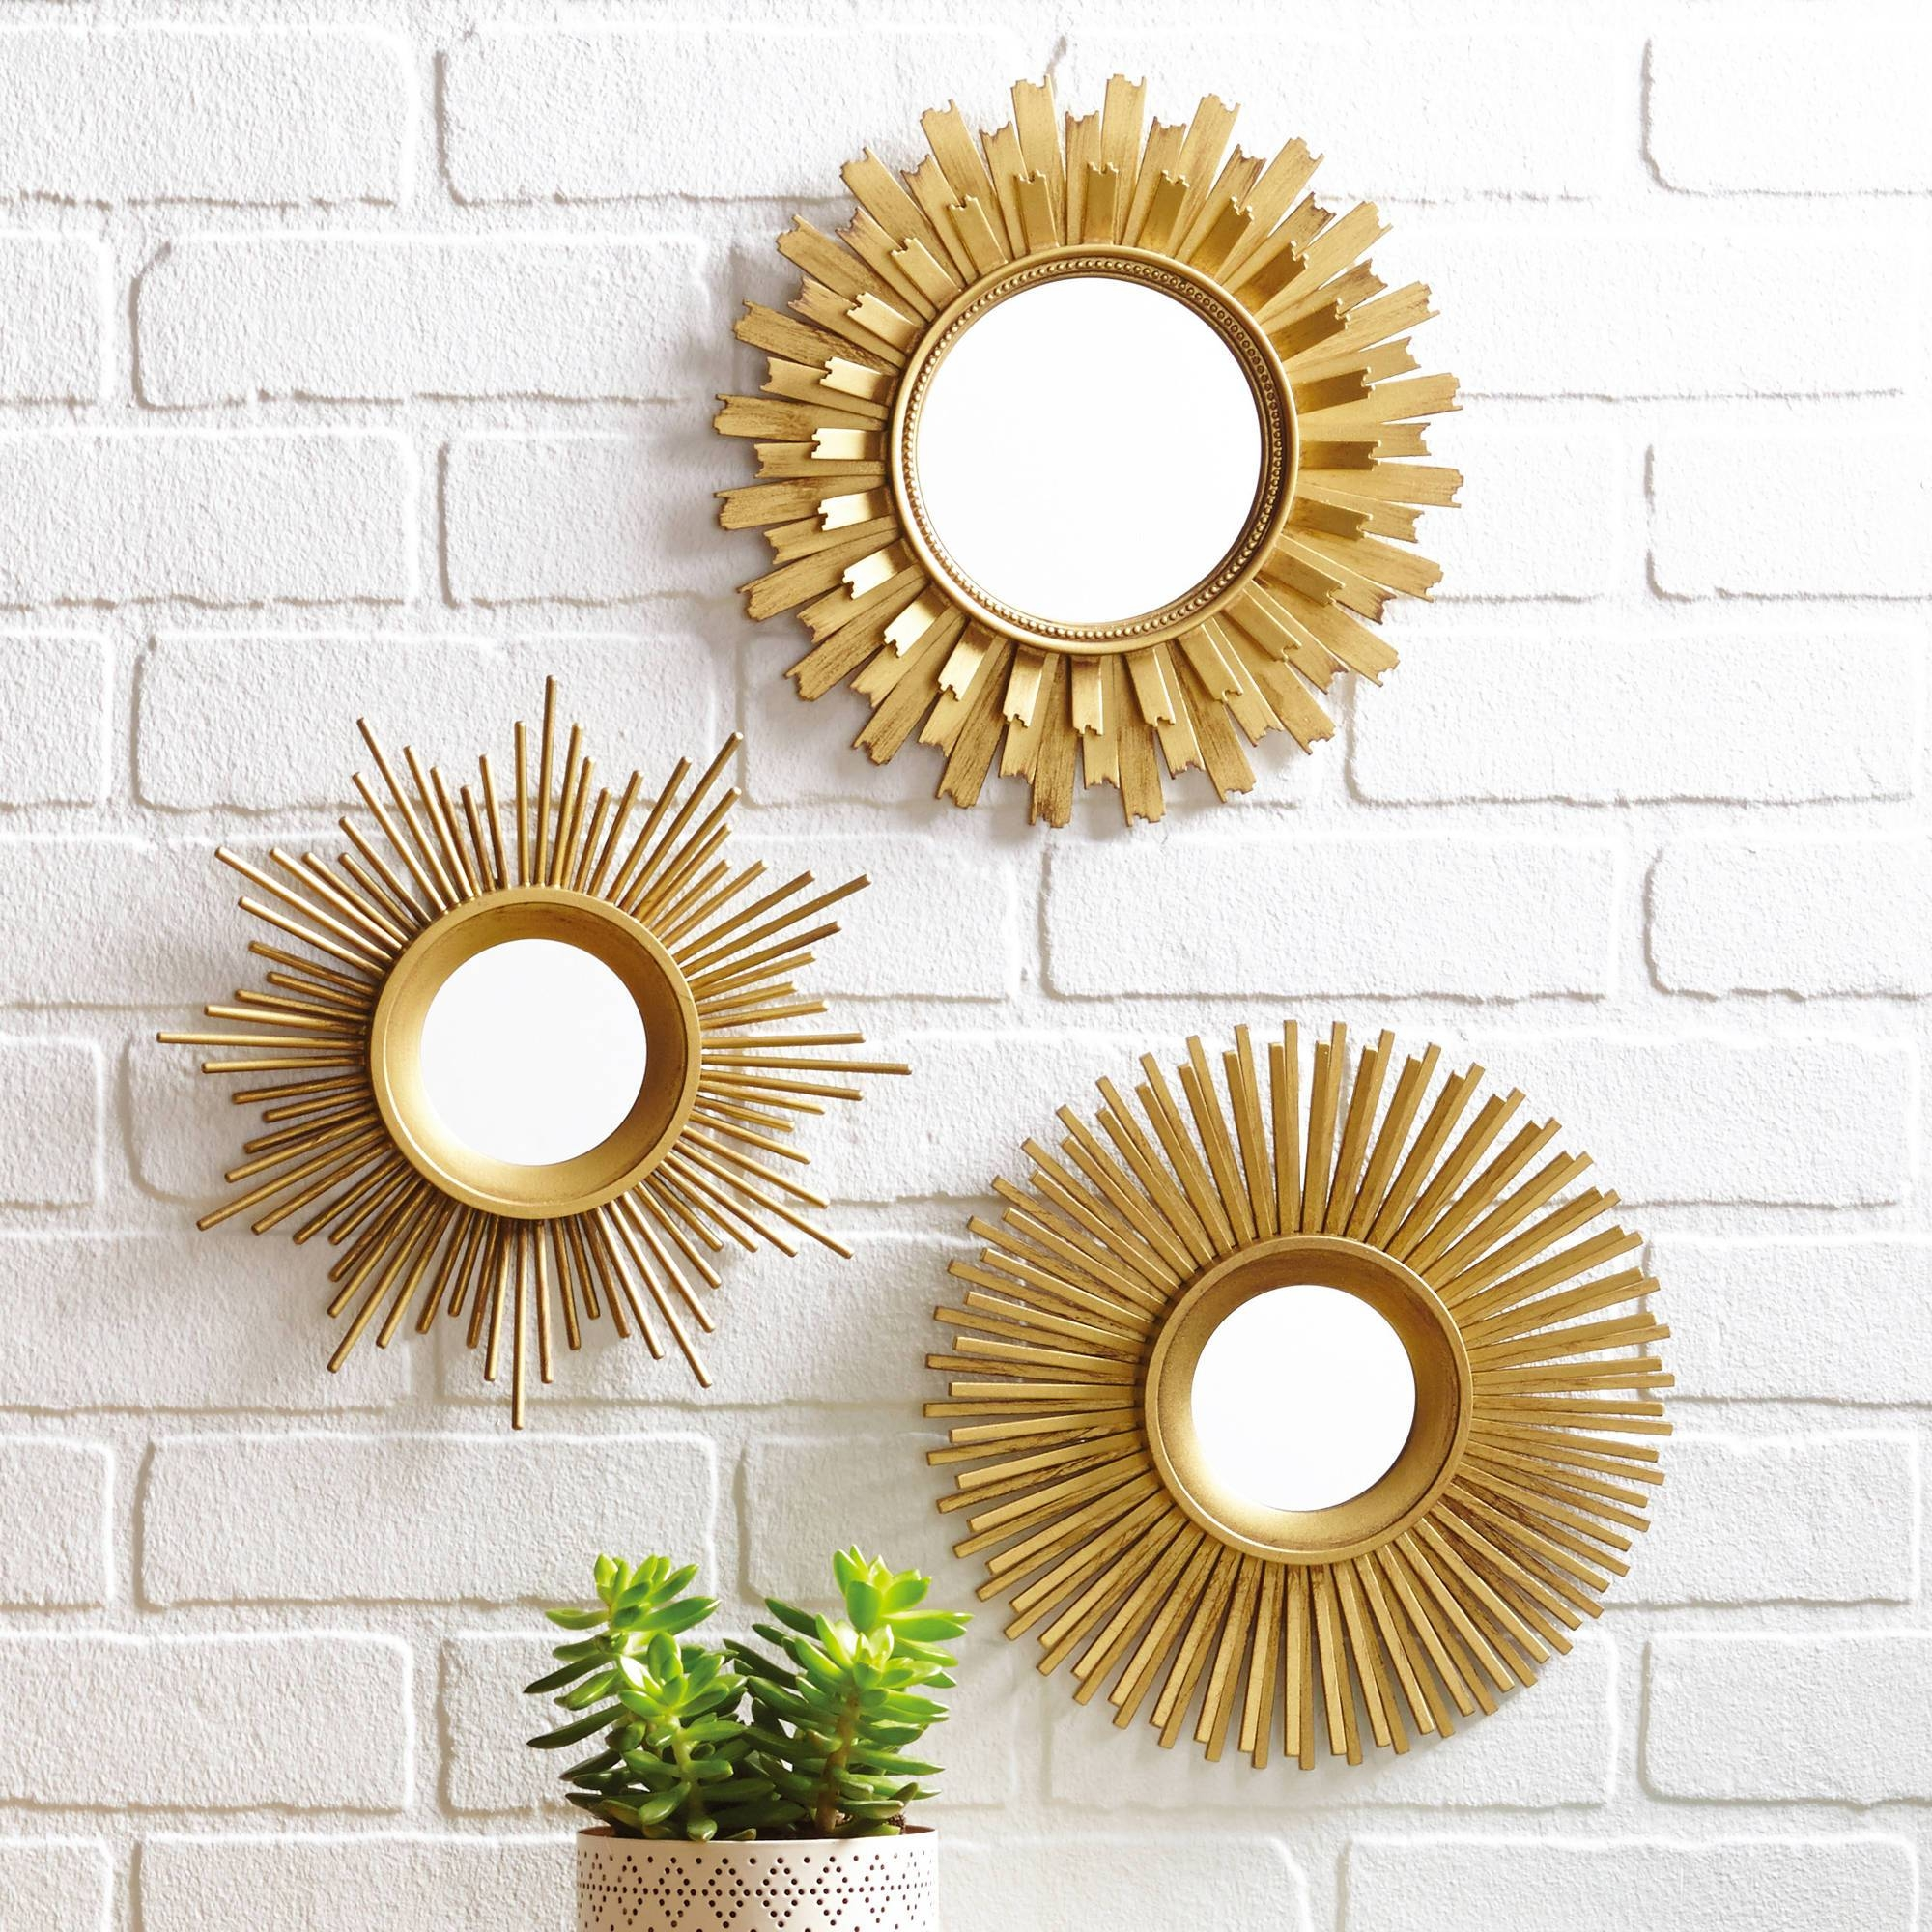 Popular Photo of Small Decorative Mirrors